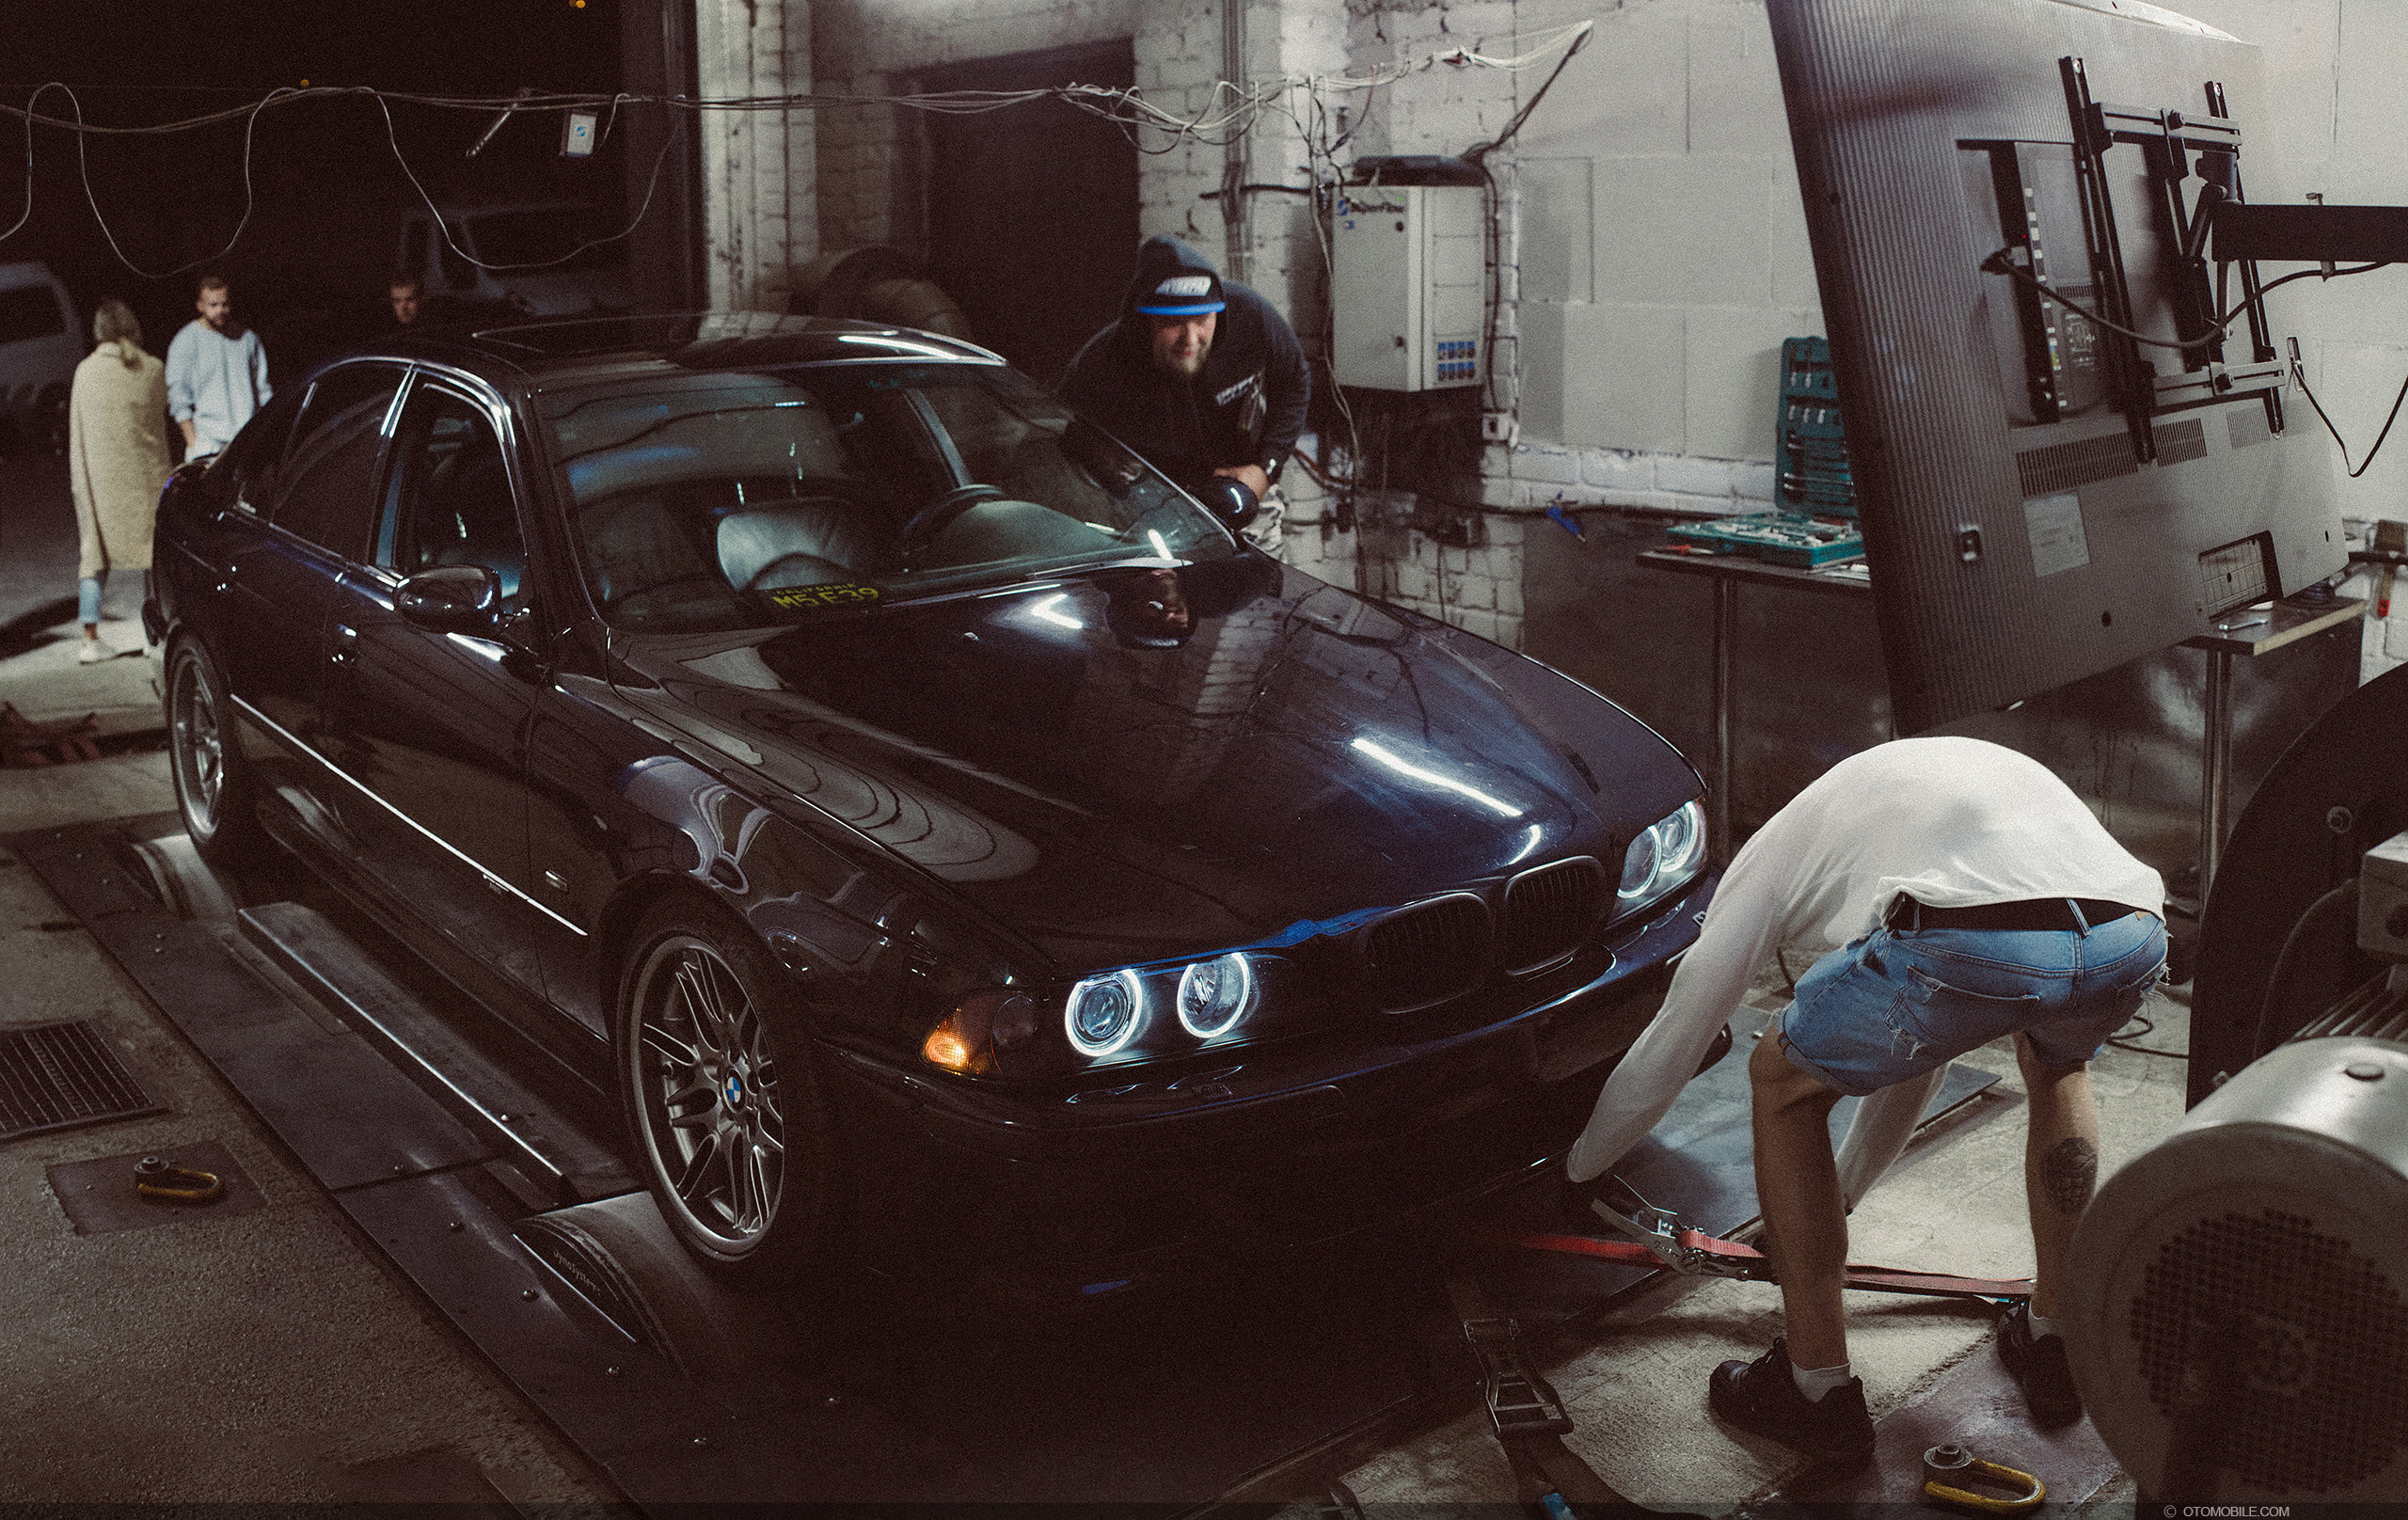 BMW M5 E39 dyno test before ESS Supercharger install at Dyno Systems, Riga Latvia on a Superflow Dyno.